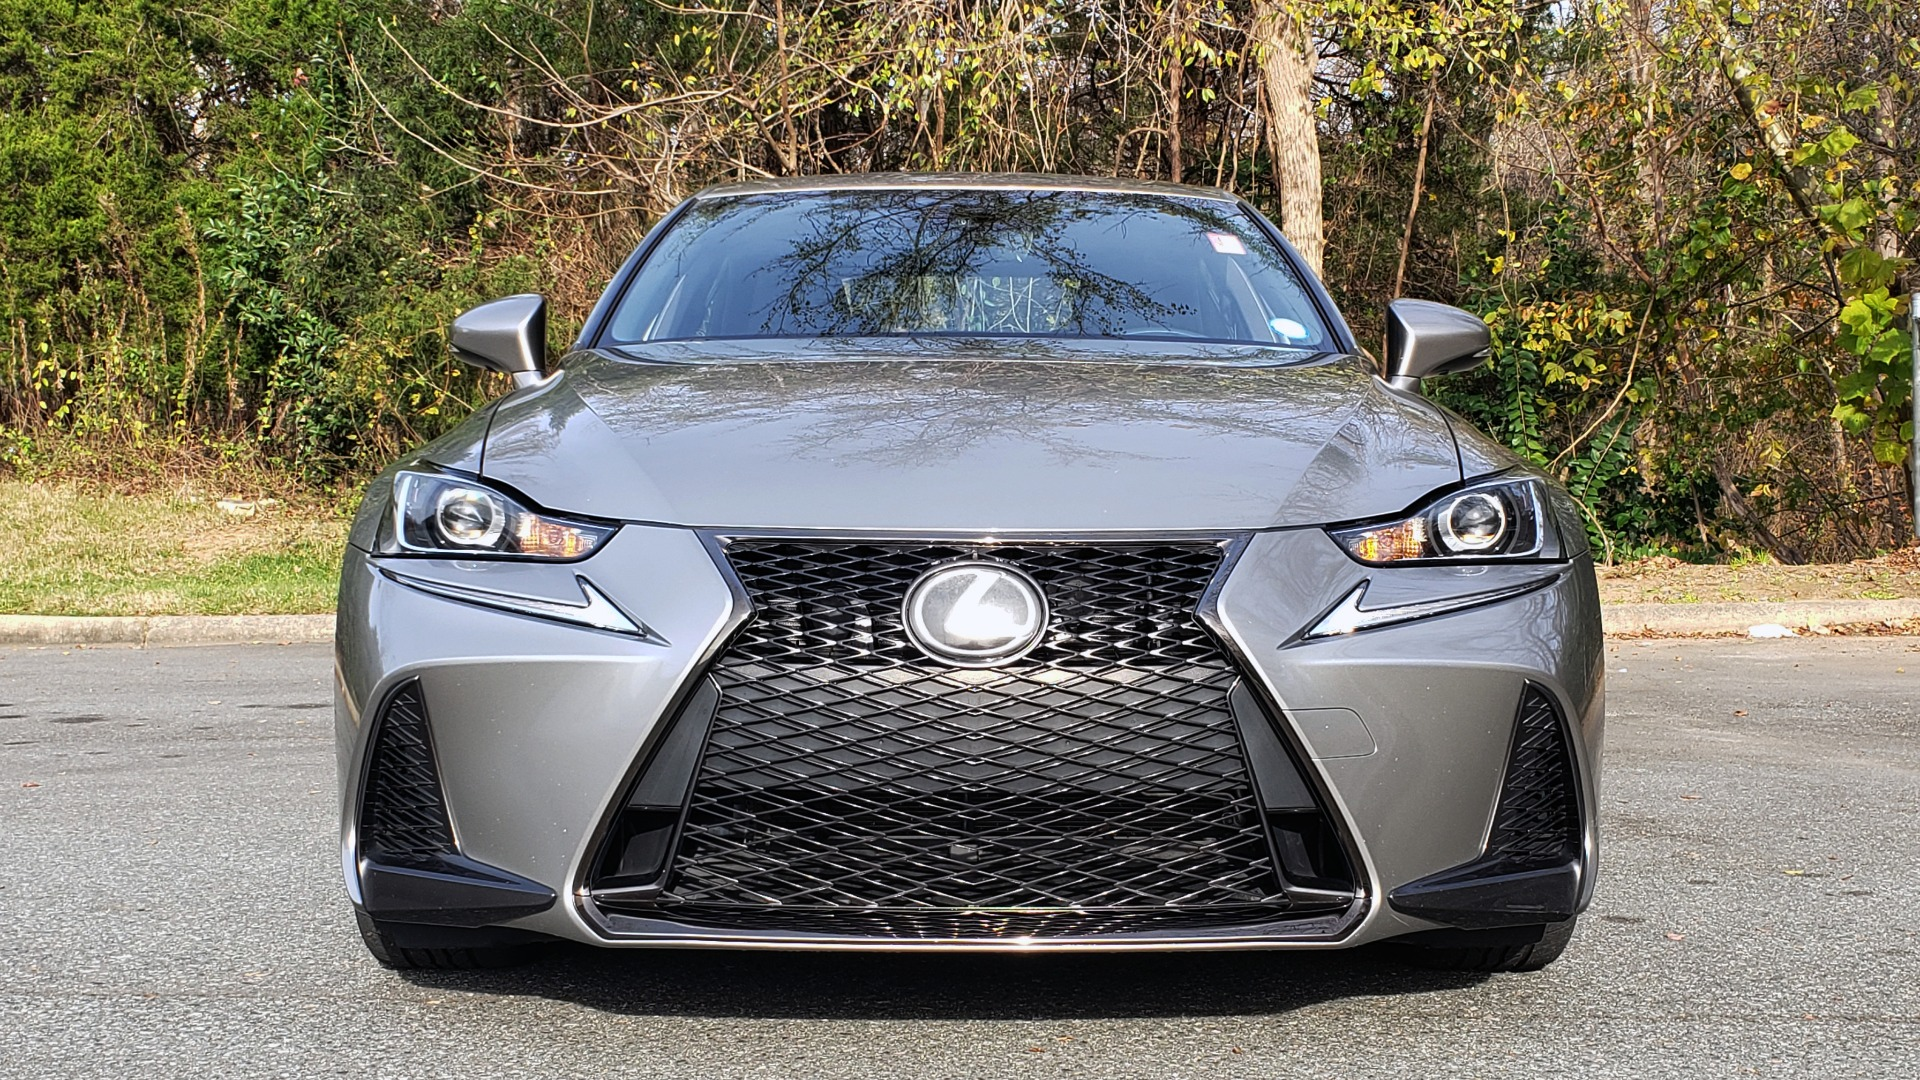 Used 2017 Lexus IS 200 TURBO F-SPORT / BSM / SUNROOF / VENT SEATS / REARVIEW for sale $24,945 at Formula Imports in Charlotte NC 28227 18